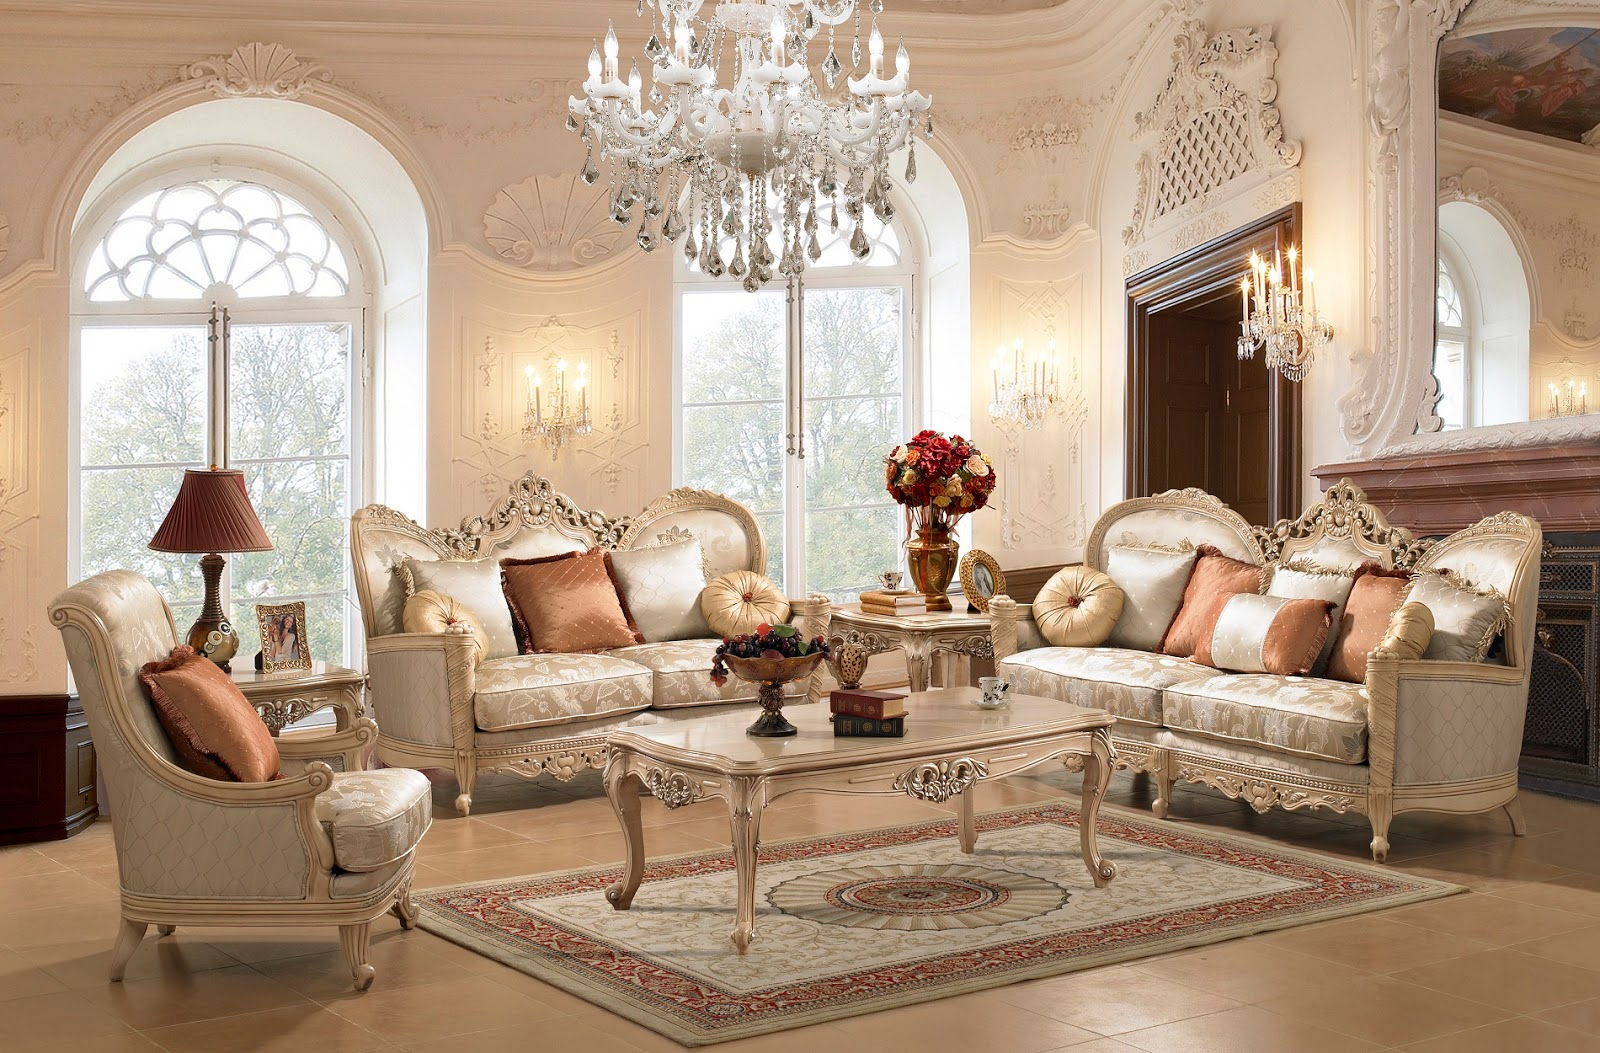 Luxurious Clic Sofas For Your Cozy Room